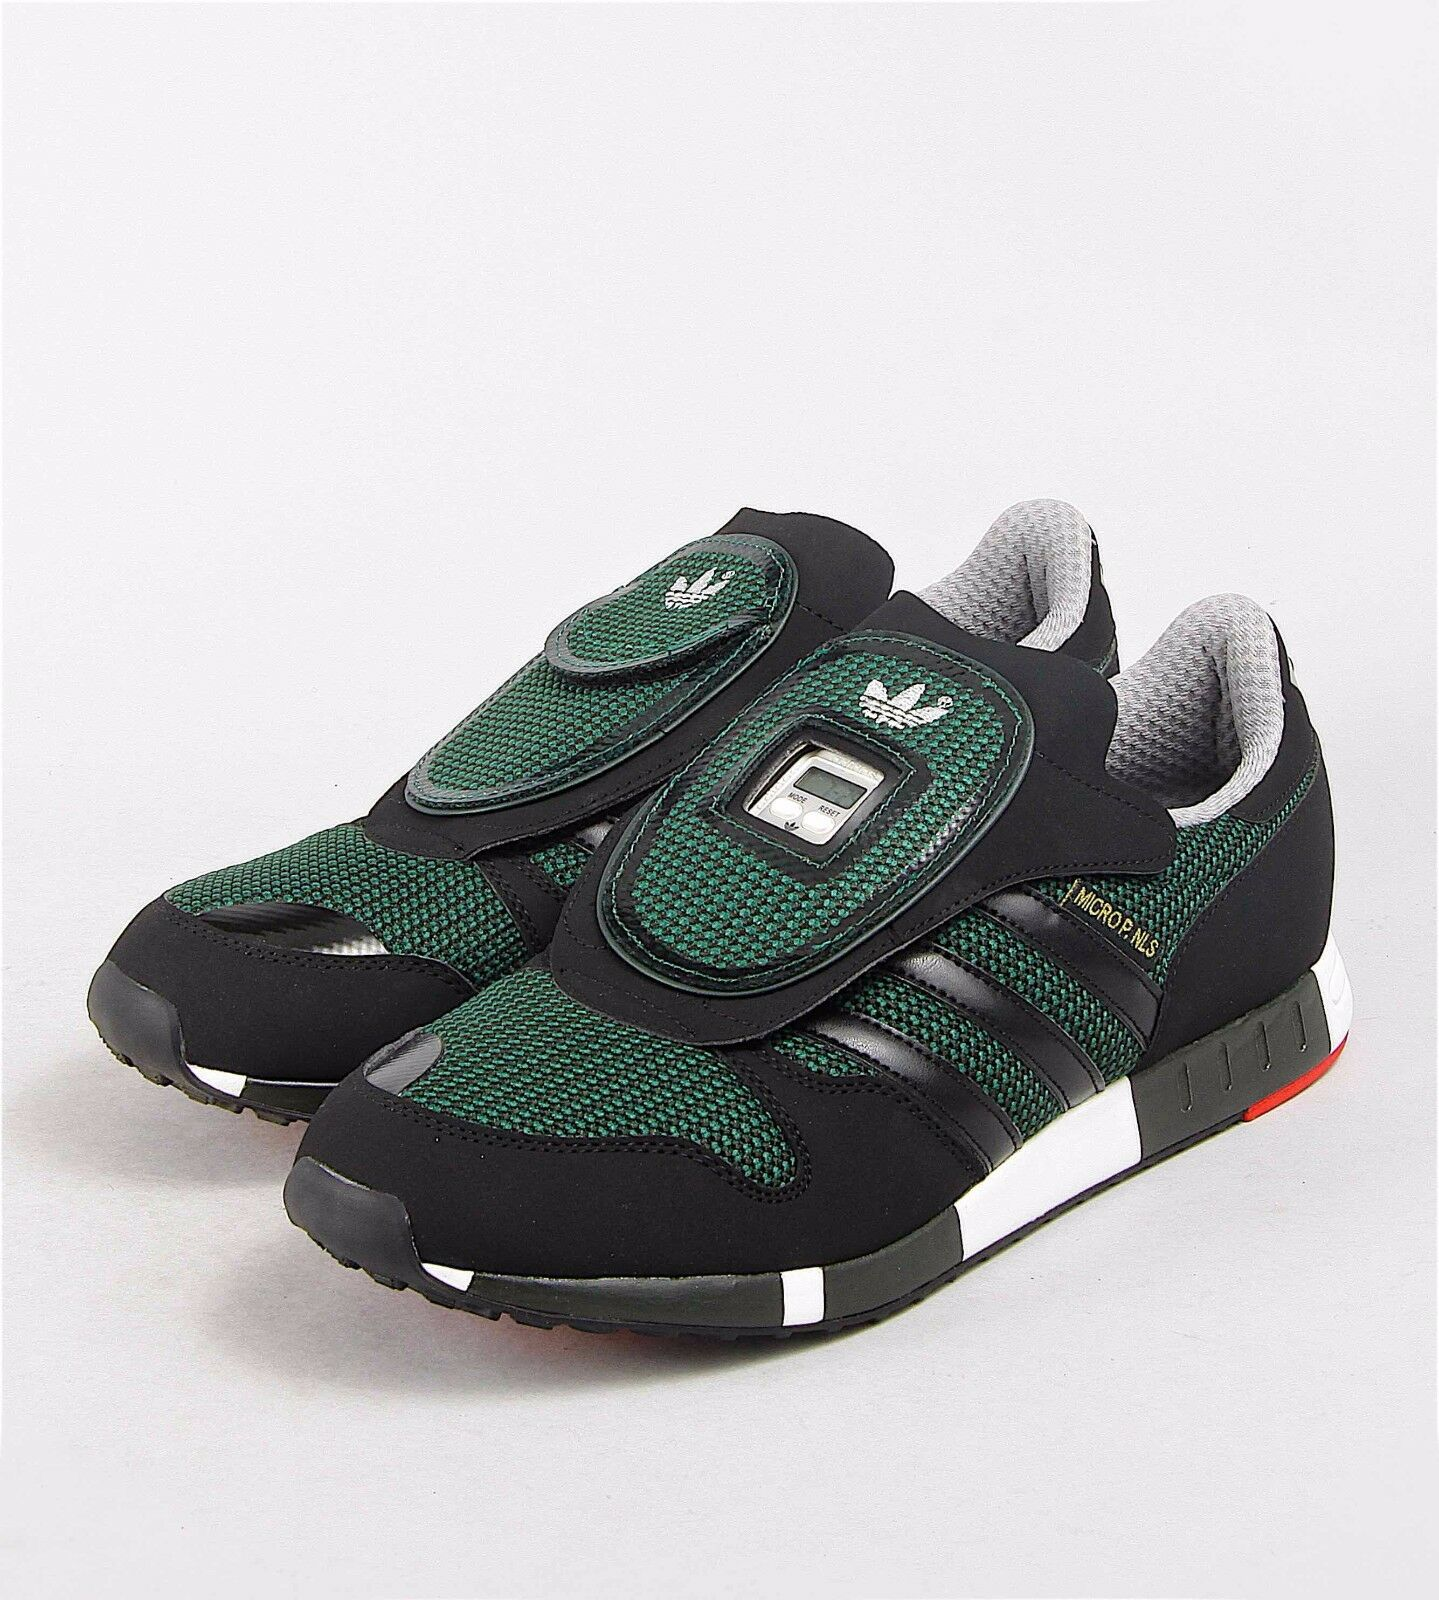 ADIDAS ORIGINALS MICROPACER OG MEN S SHOES SIZE US 12 UK 11.5 GREEN BLACK  S77306 30% acffadf69